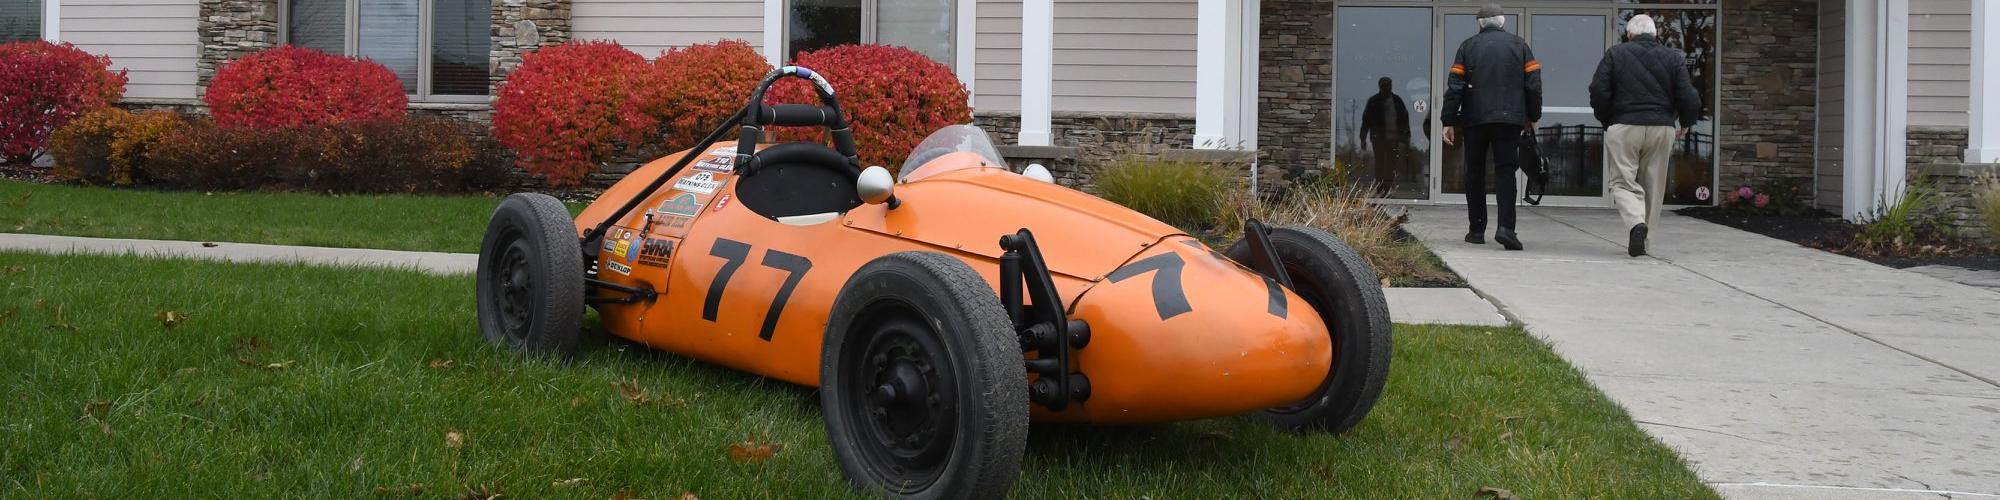 International Motor Racing Research Center cover image